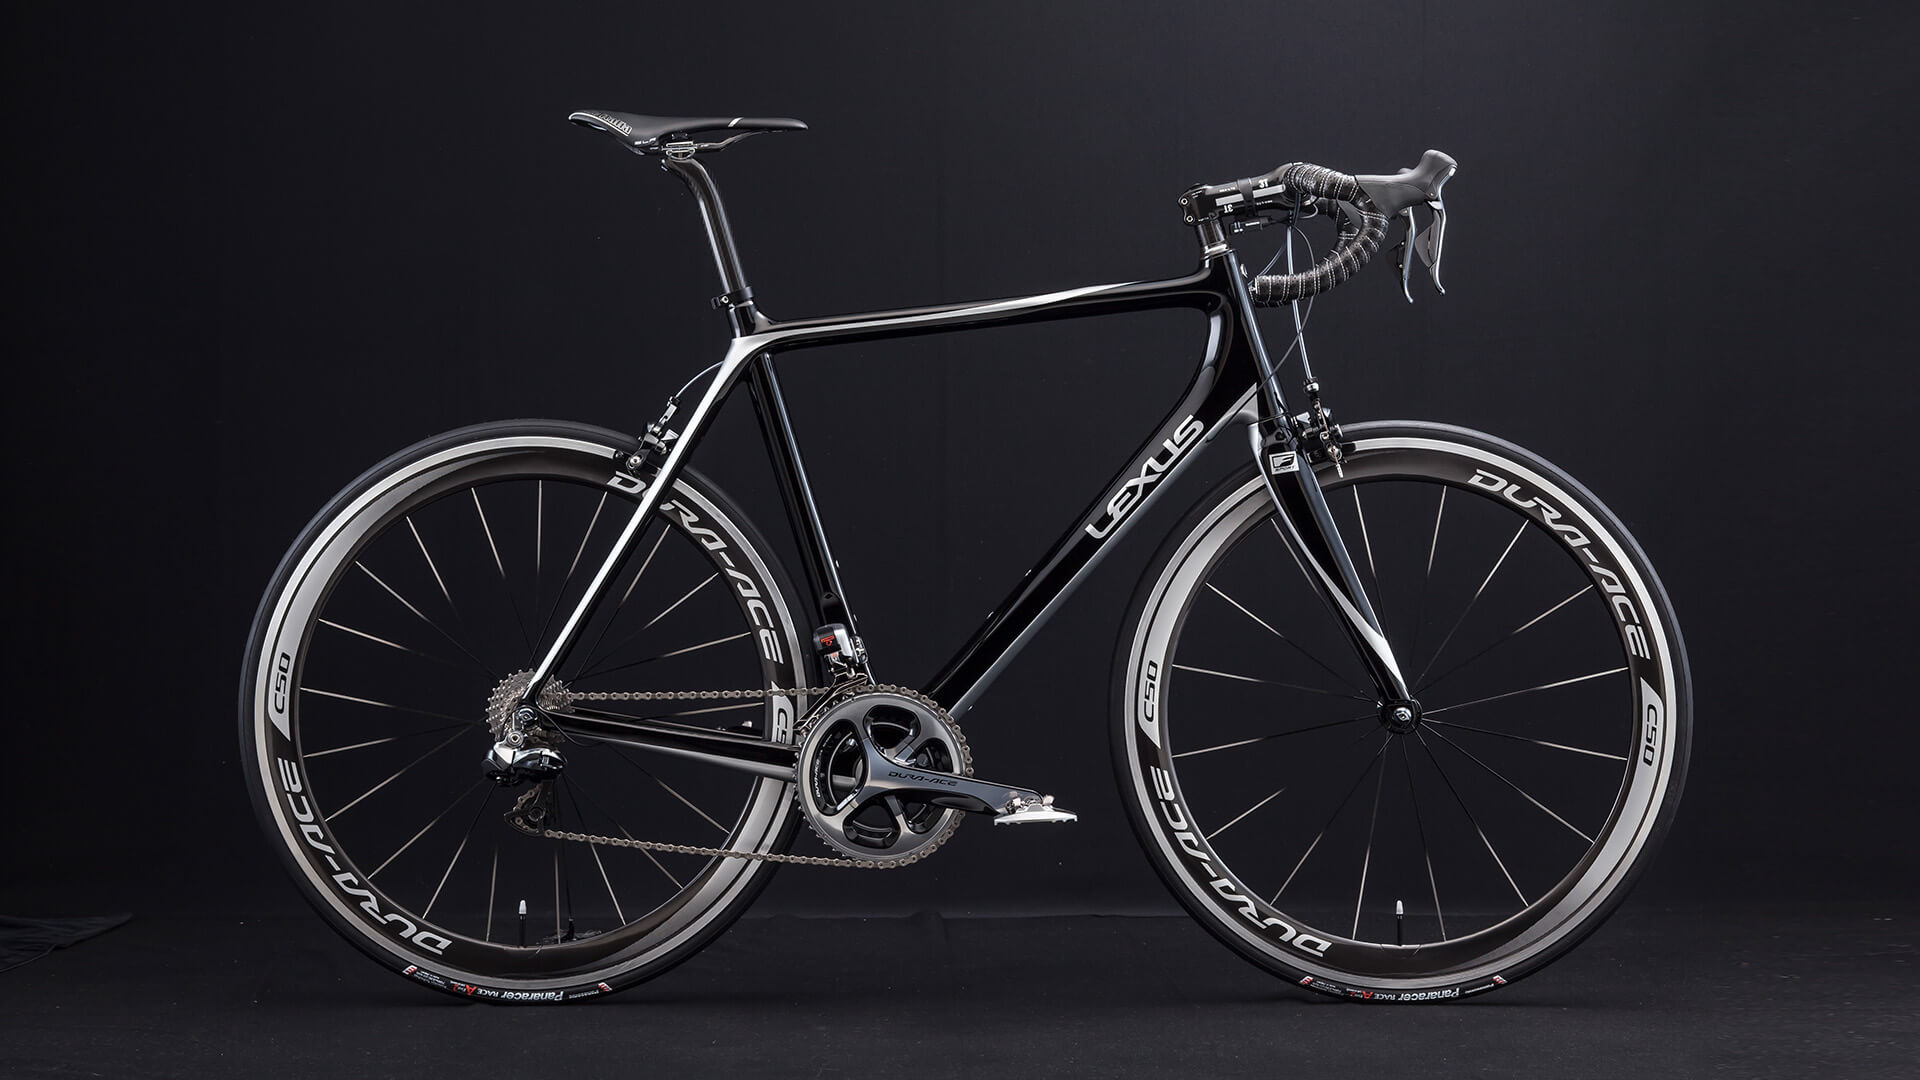 2018 lexus ownership bicycle